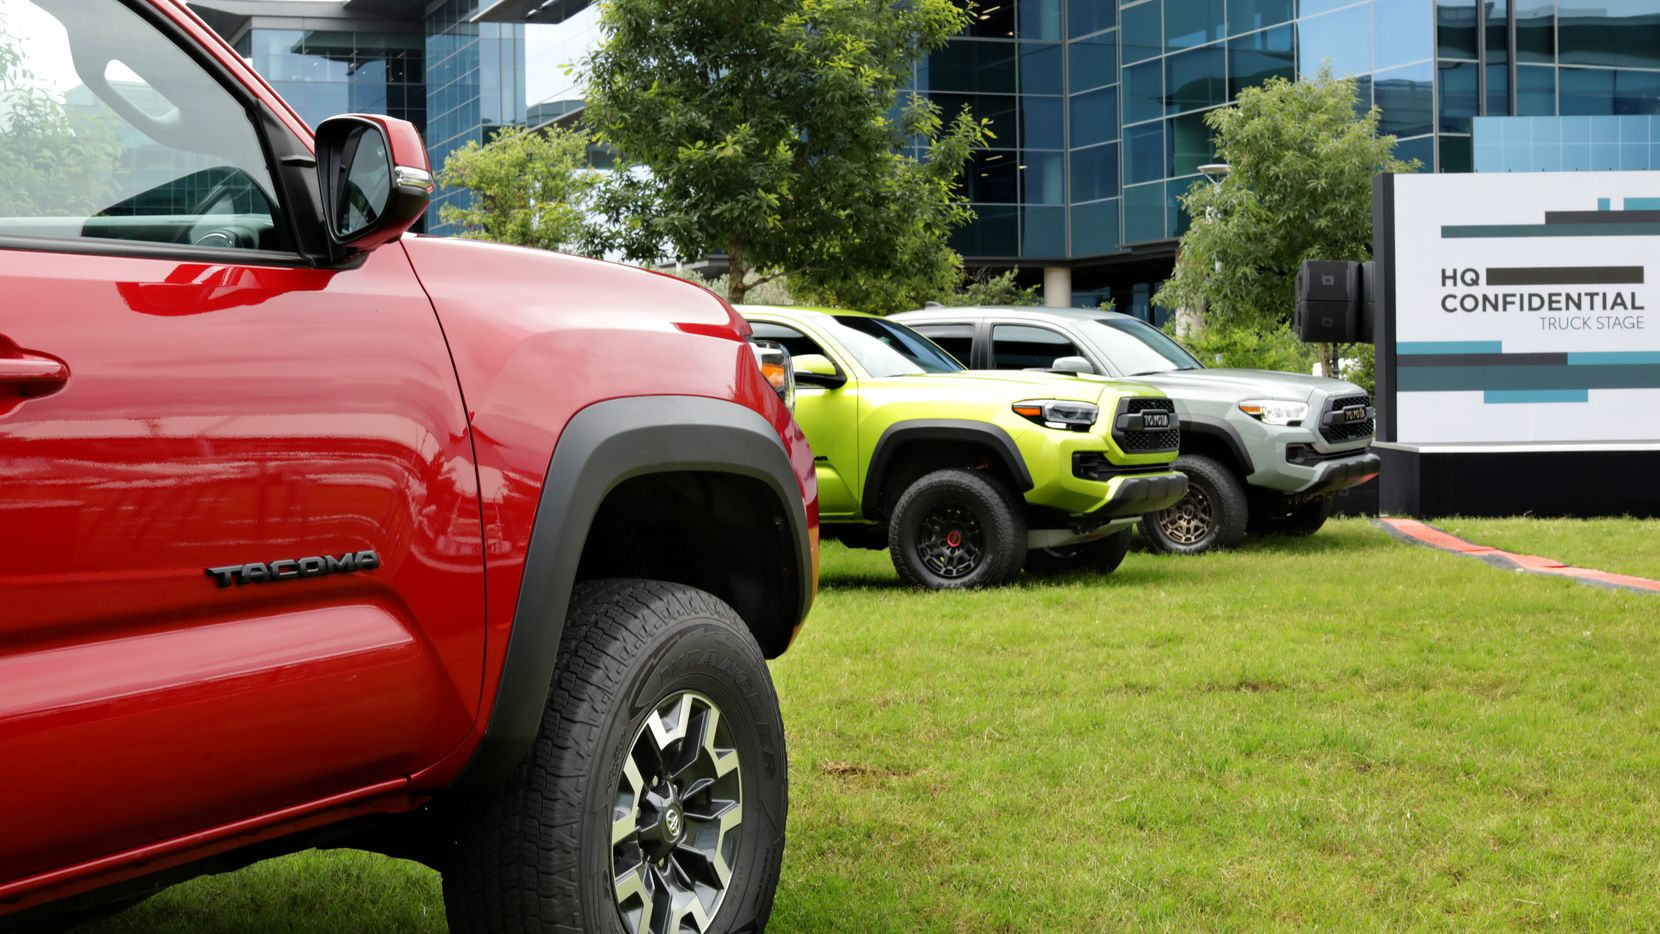 The new truck and SUV lineup photographed during a special press event at Toyota Headquarters in Plano, TX, on Jun. 2, 2021.